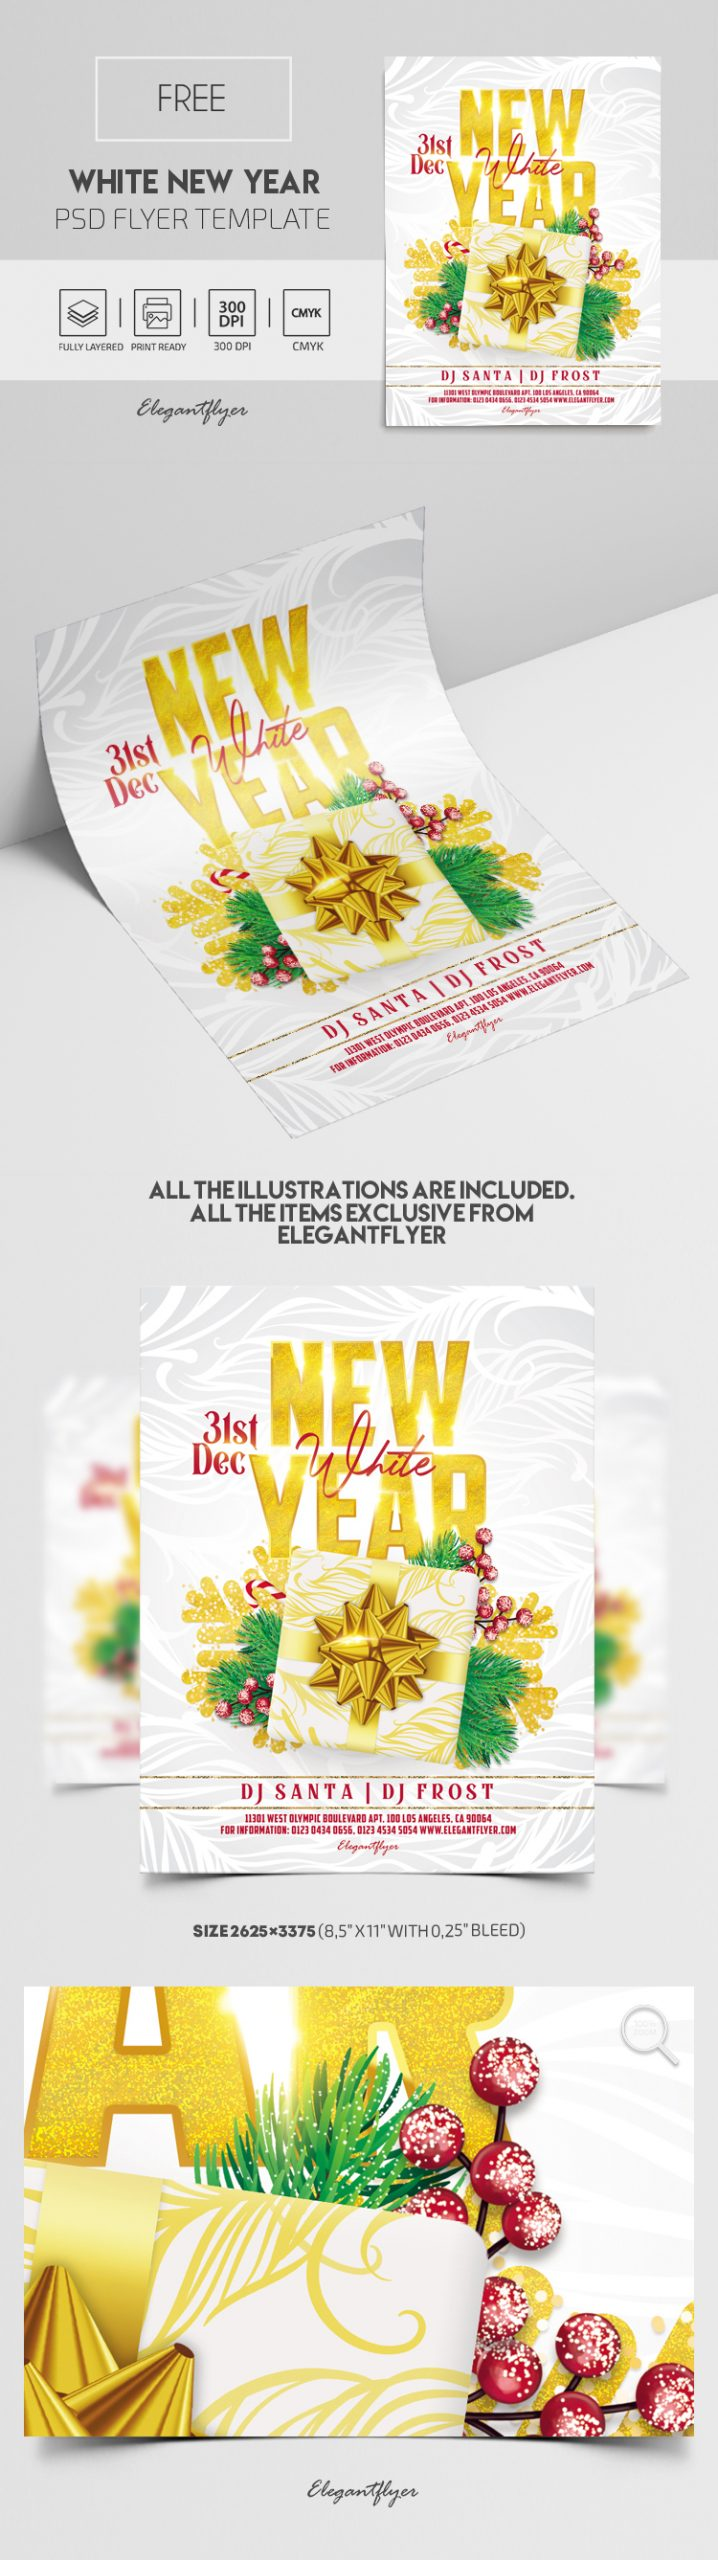 White New Year Party – Free PSD Flyer Template